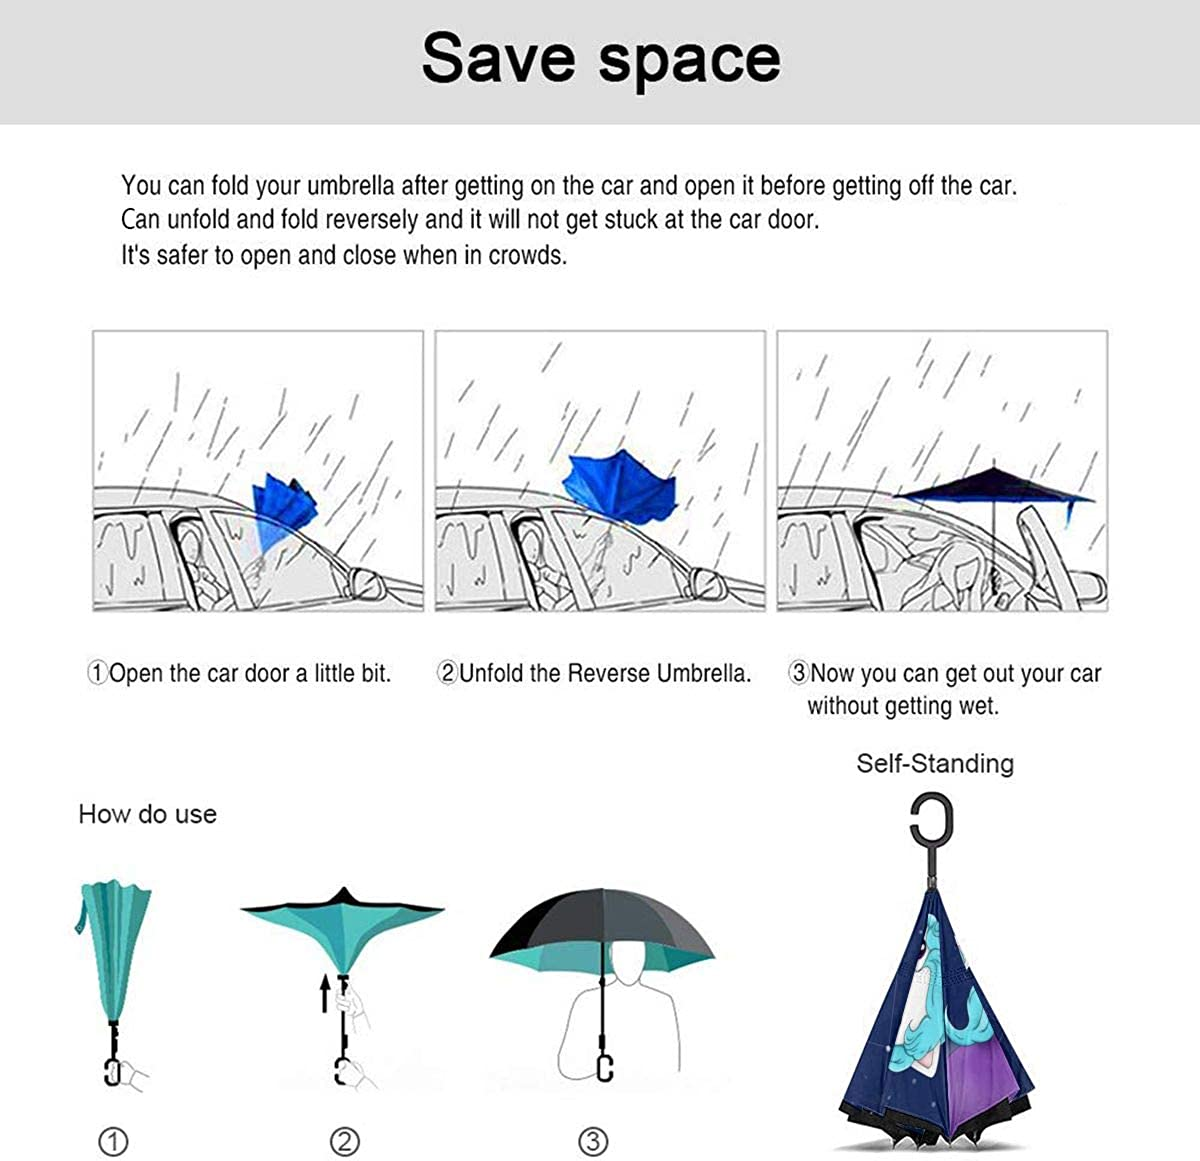 Reverse Umbrella Double Layer Inverted Umbrellas For Car Rain Outdoor With C-Shaped Handle Unicorn Galaxy Fantasy Star Cosmic Planet Cute Personalized